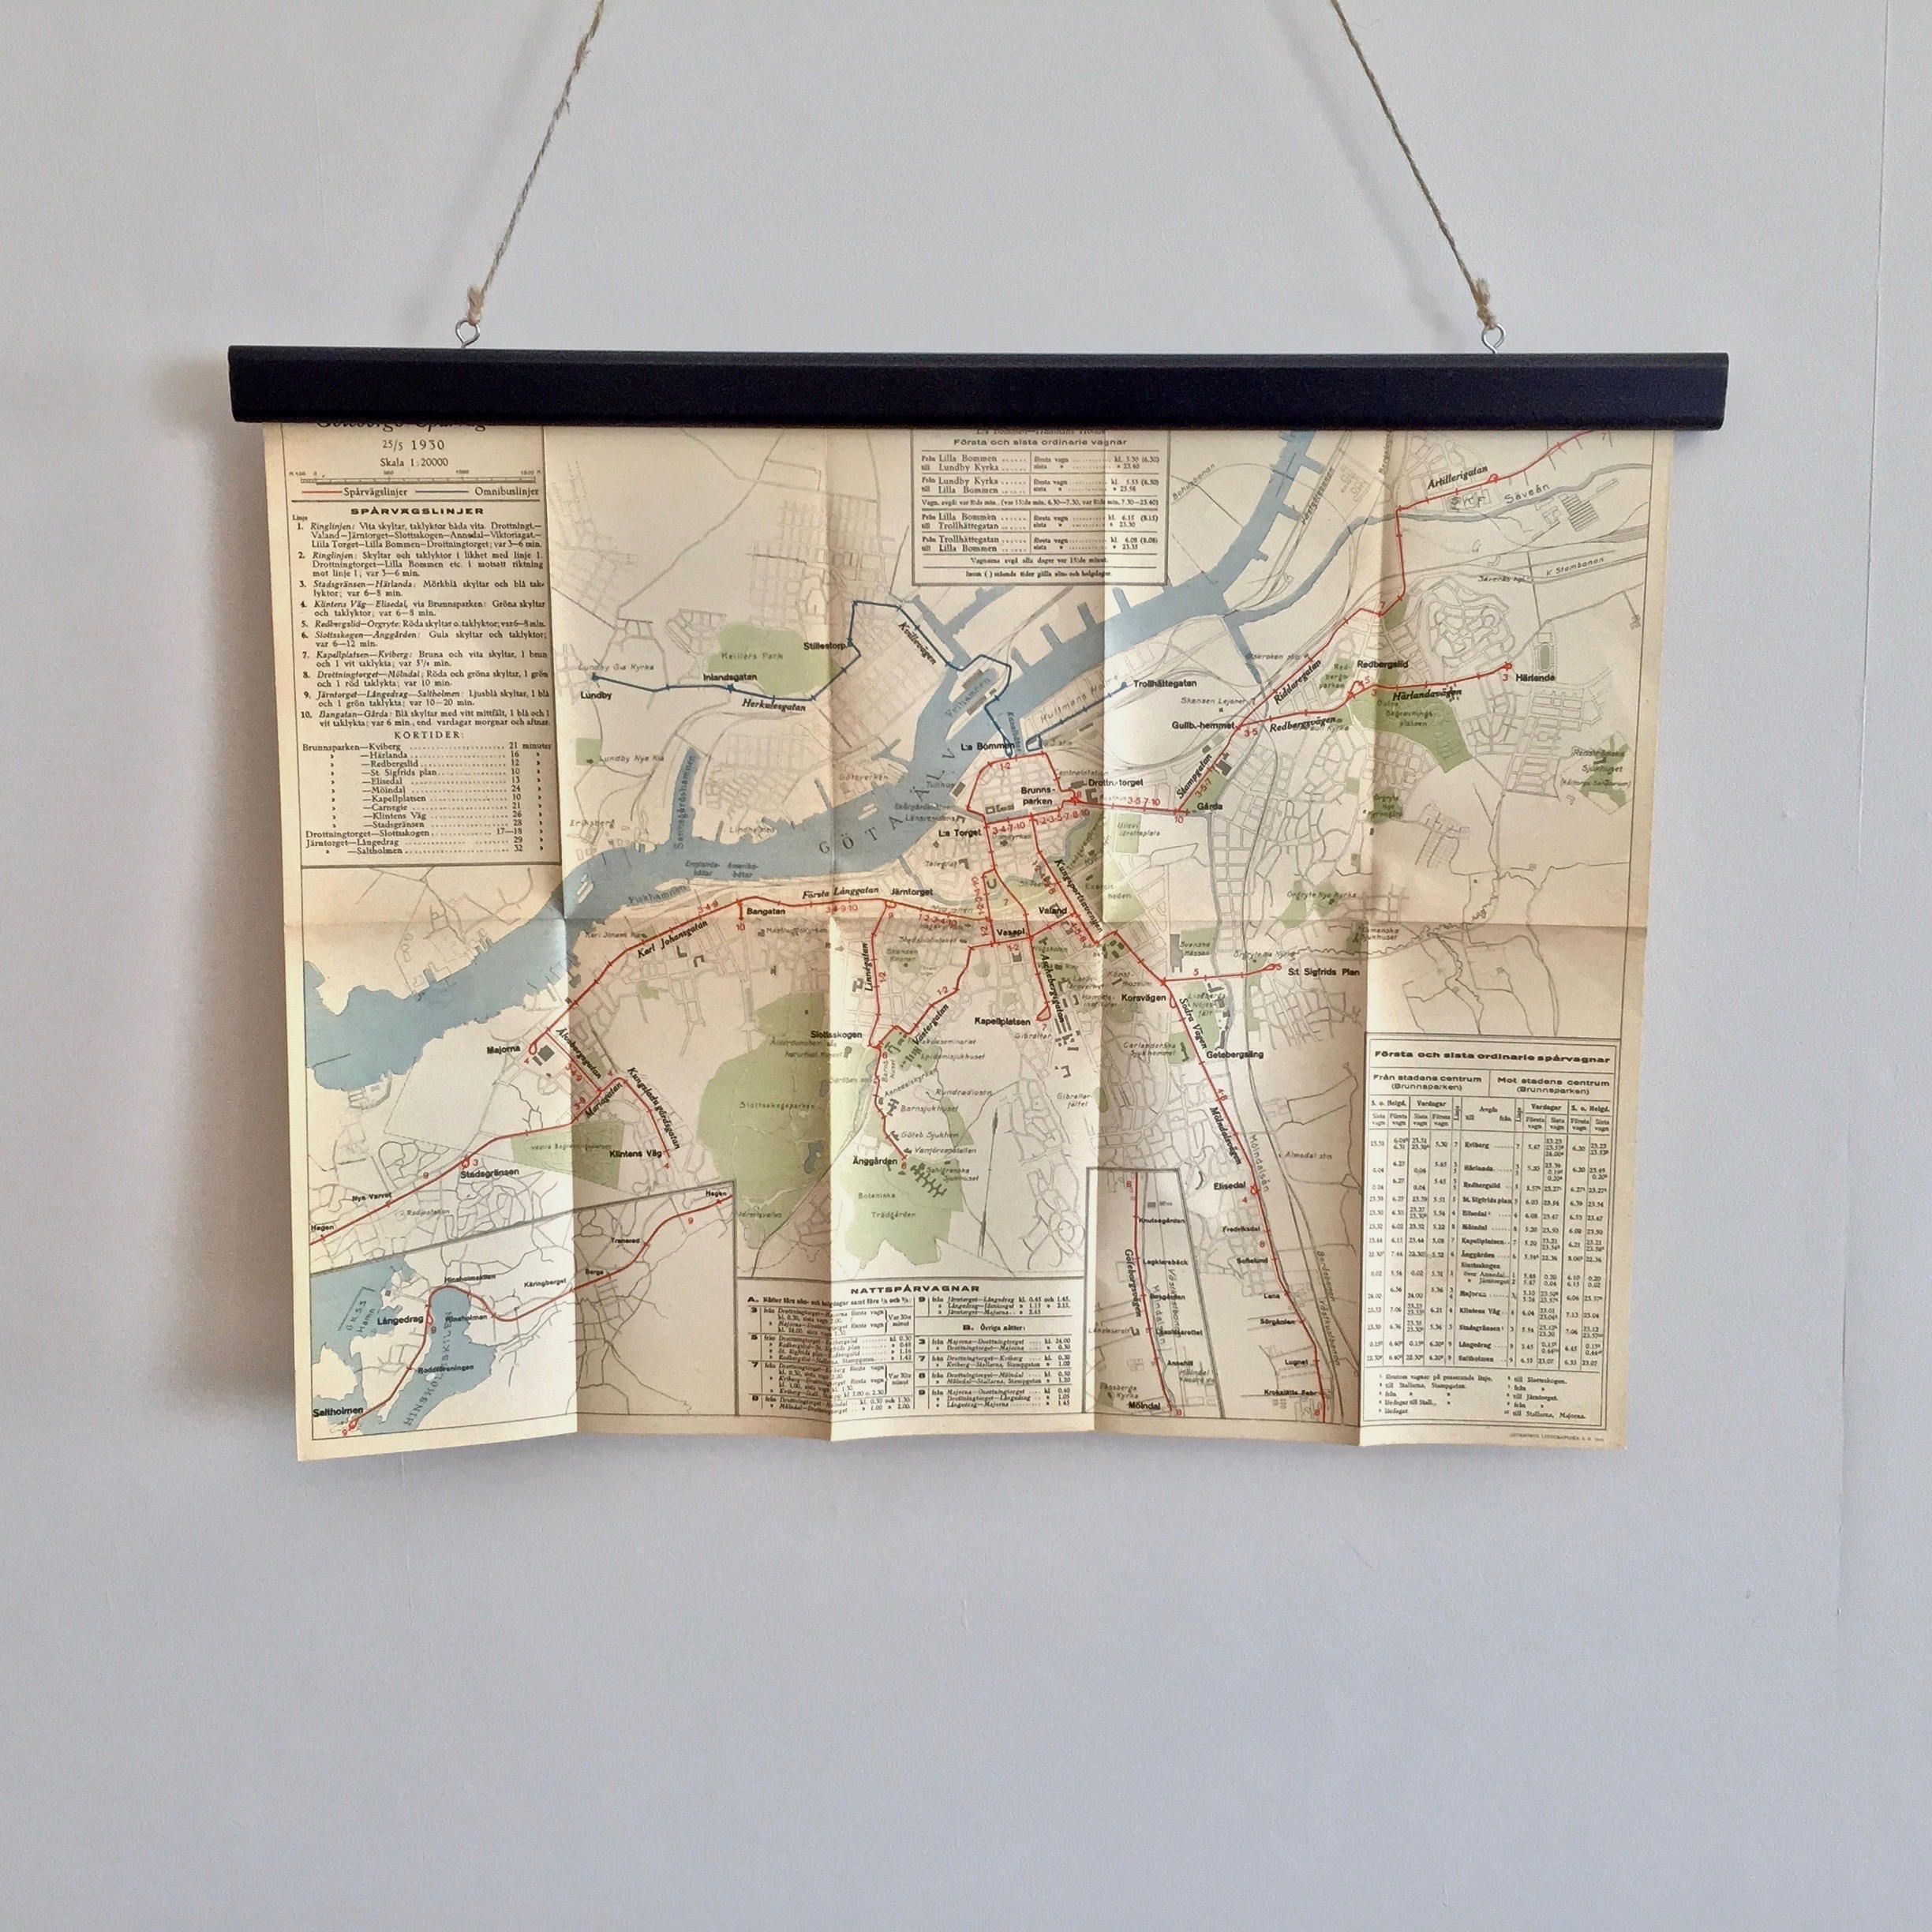 Free Worldwide Shipping Antique Tram Map Of Gothenburg Sweden From 1930 Perfect For Your Next Holiday In Goteborg By Aga Etsy Etsy Shop Vintage World Maps